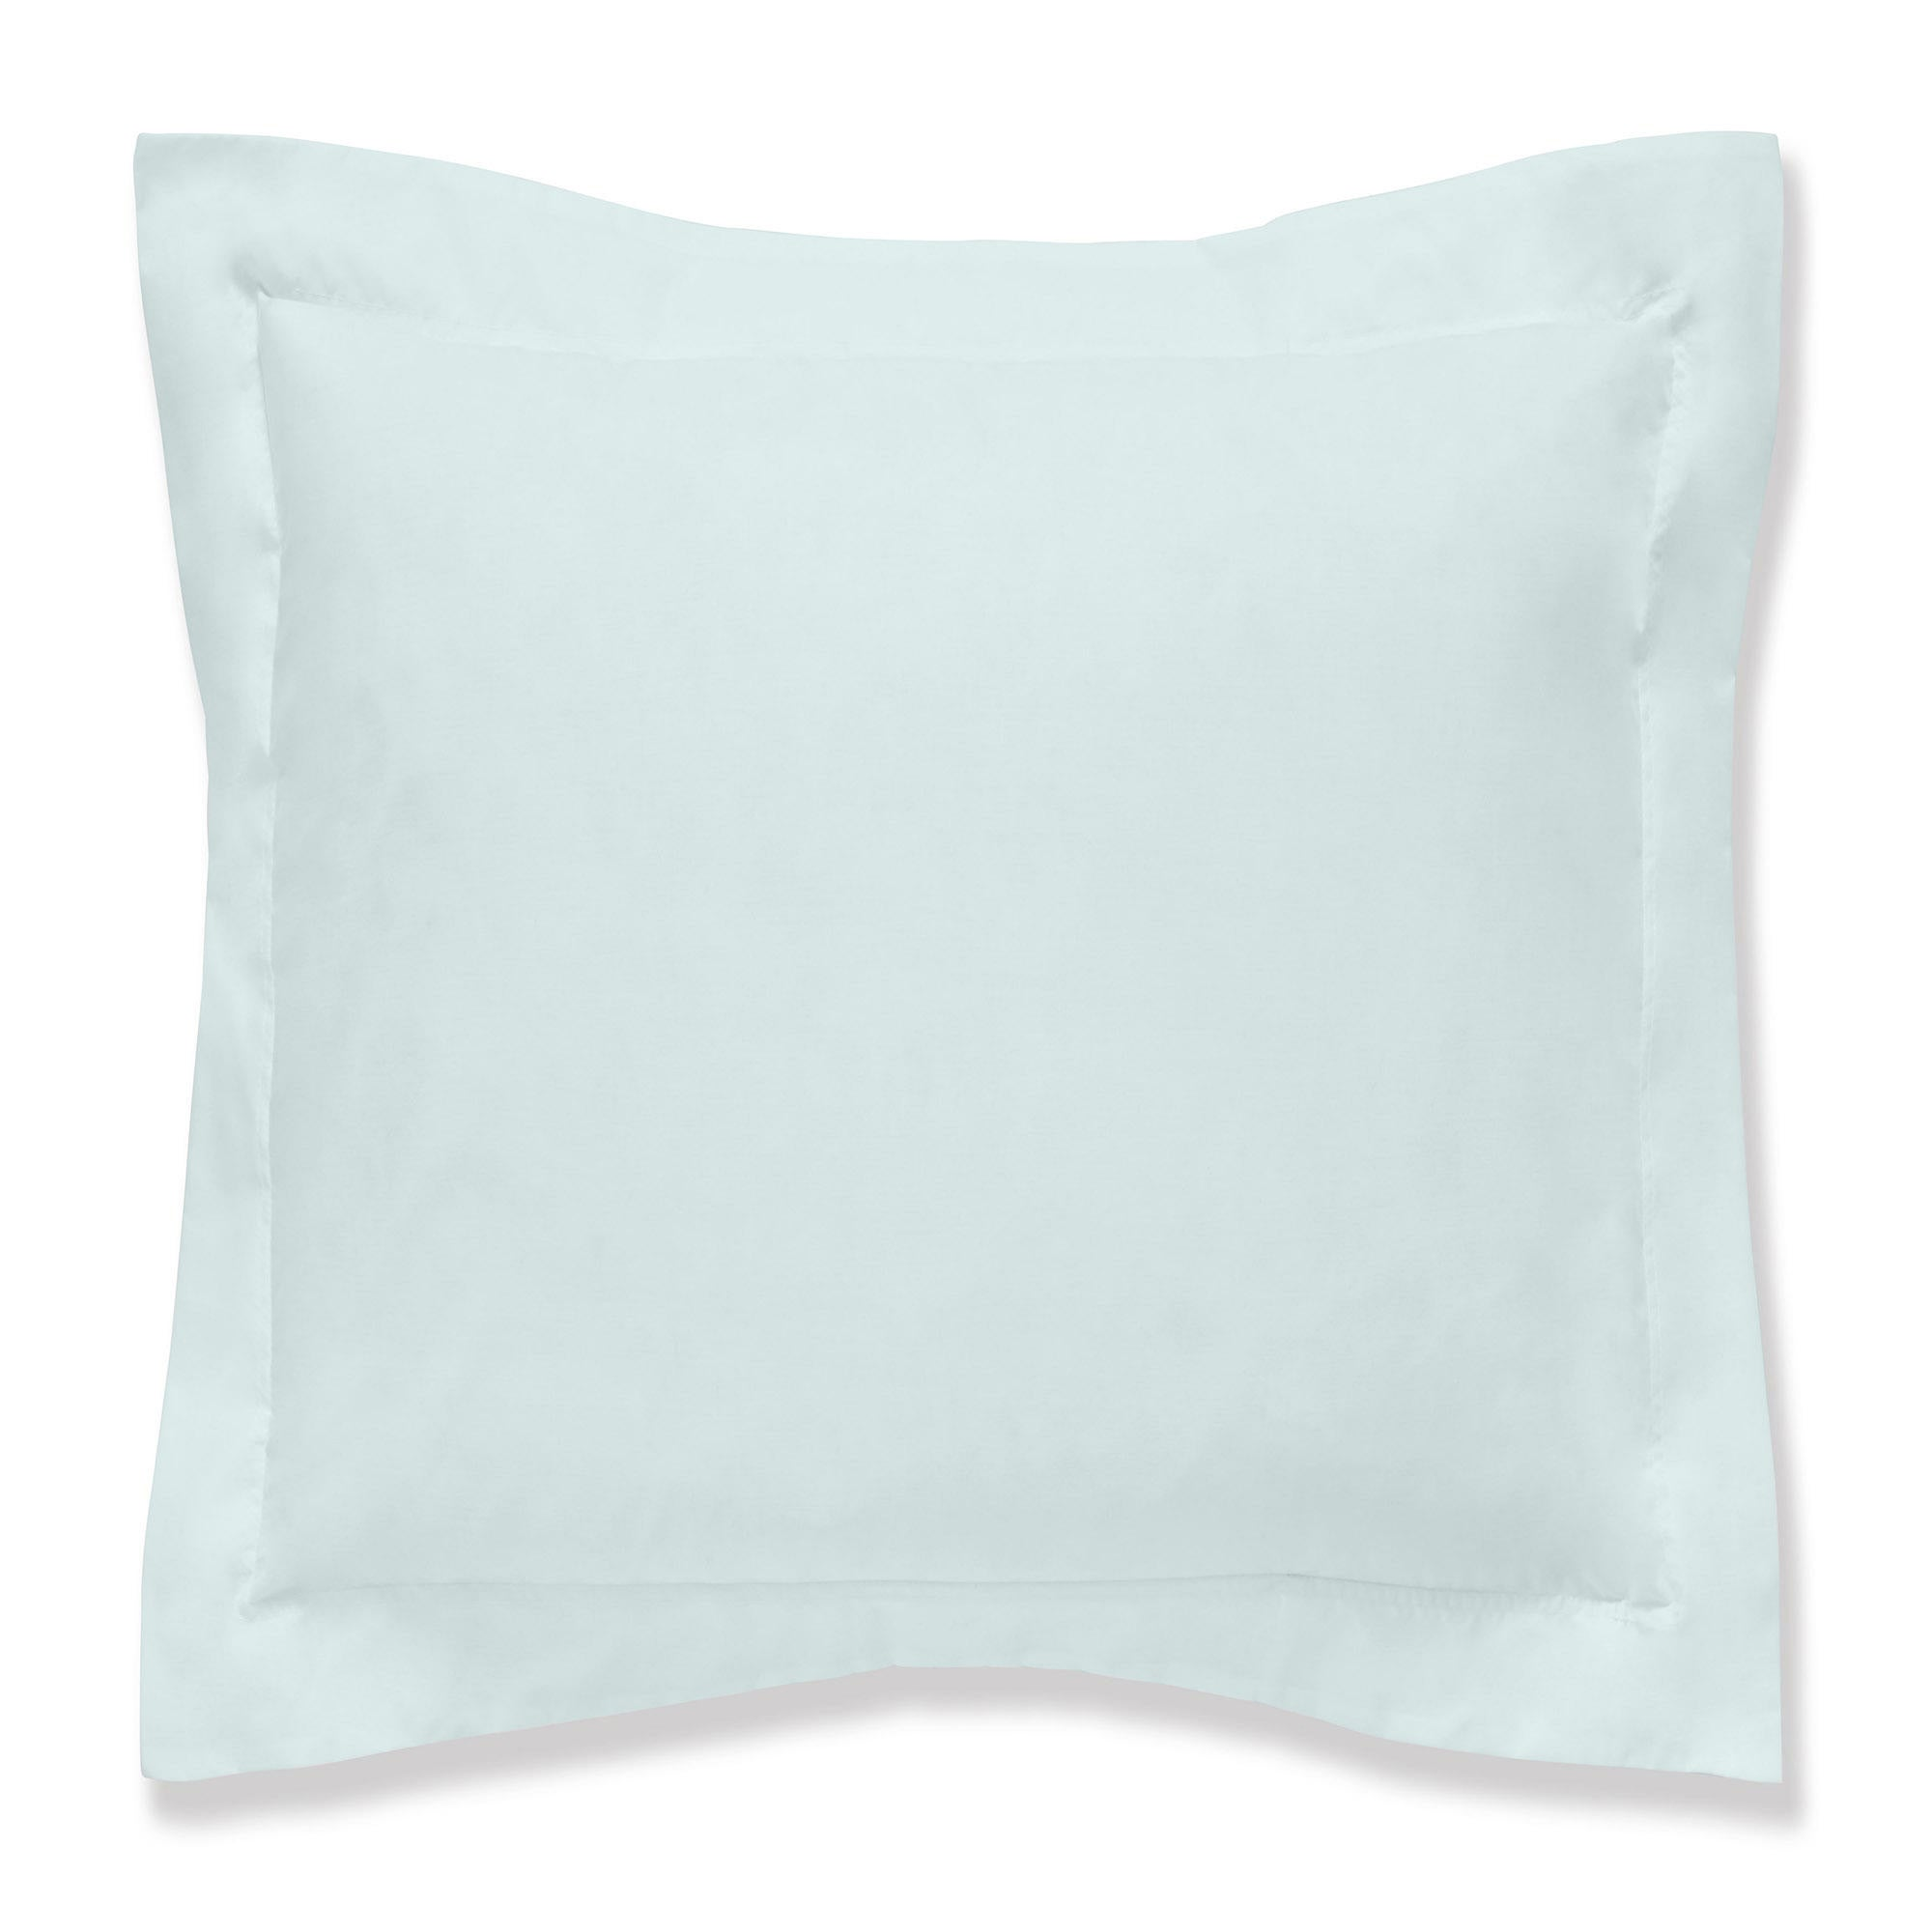 Fogarty Soft Touch Duck Egg Blue Continental Pillowcase Duck Egg (Blue)